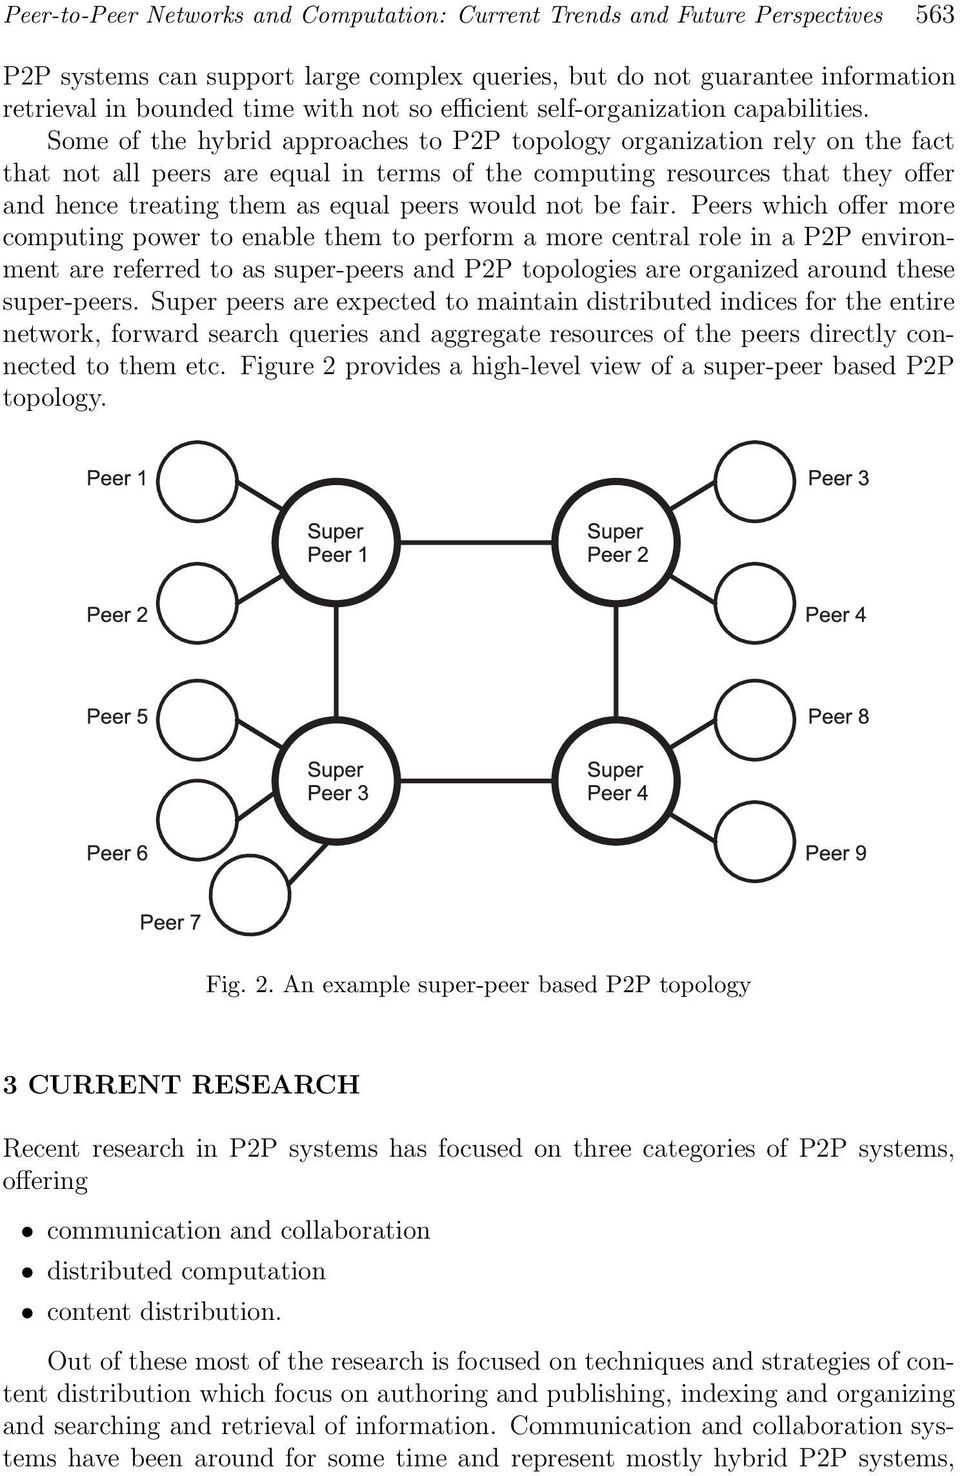 Some of the hybrid approaches to P2P topology organization rely on the fact that not all peers are equal in terms of the computing resources that they offer and hence treating them as equal peers